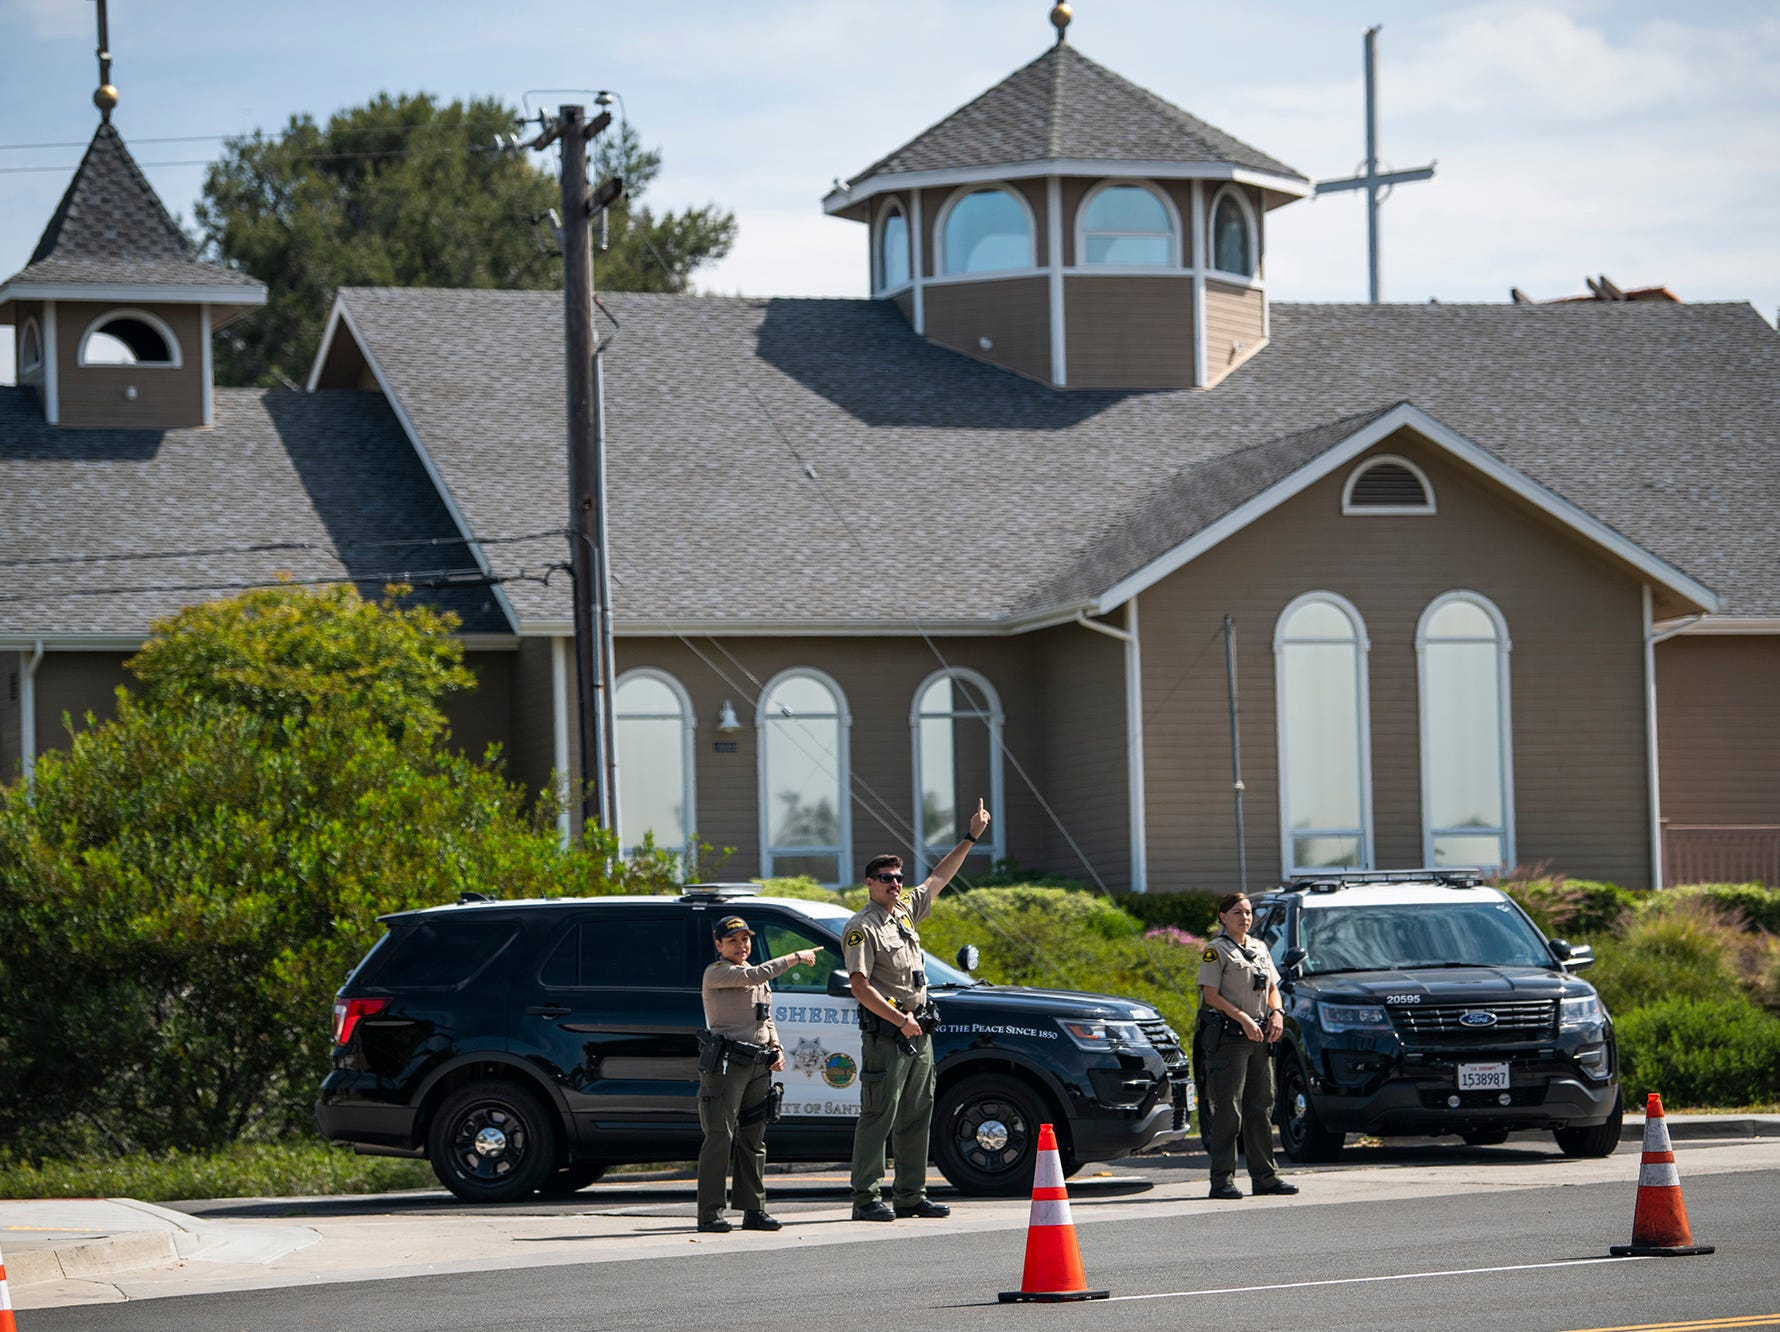 4/28/19 10:20:29 -- Poway, CA, U.S.A  -- Poway Police officers direct traffic in front of Chabad of Poway synagogue.One woman was killed and three others were wounded when a man entered a synagogue during Passover services Saturday at the Chabad of Poway temple and opened fire with an AR-style assault weapon shortly before 11:30 a.m. The suspect, 19-year-old John Earnest, was arrested and is being questioned by authorities.  --    Photo by Harrison Hill, USA TODAY Staff ORG XMIT:  HH 137983 Chabad follow 4/28/2019 (Via OlyDrop)